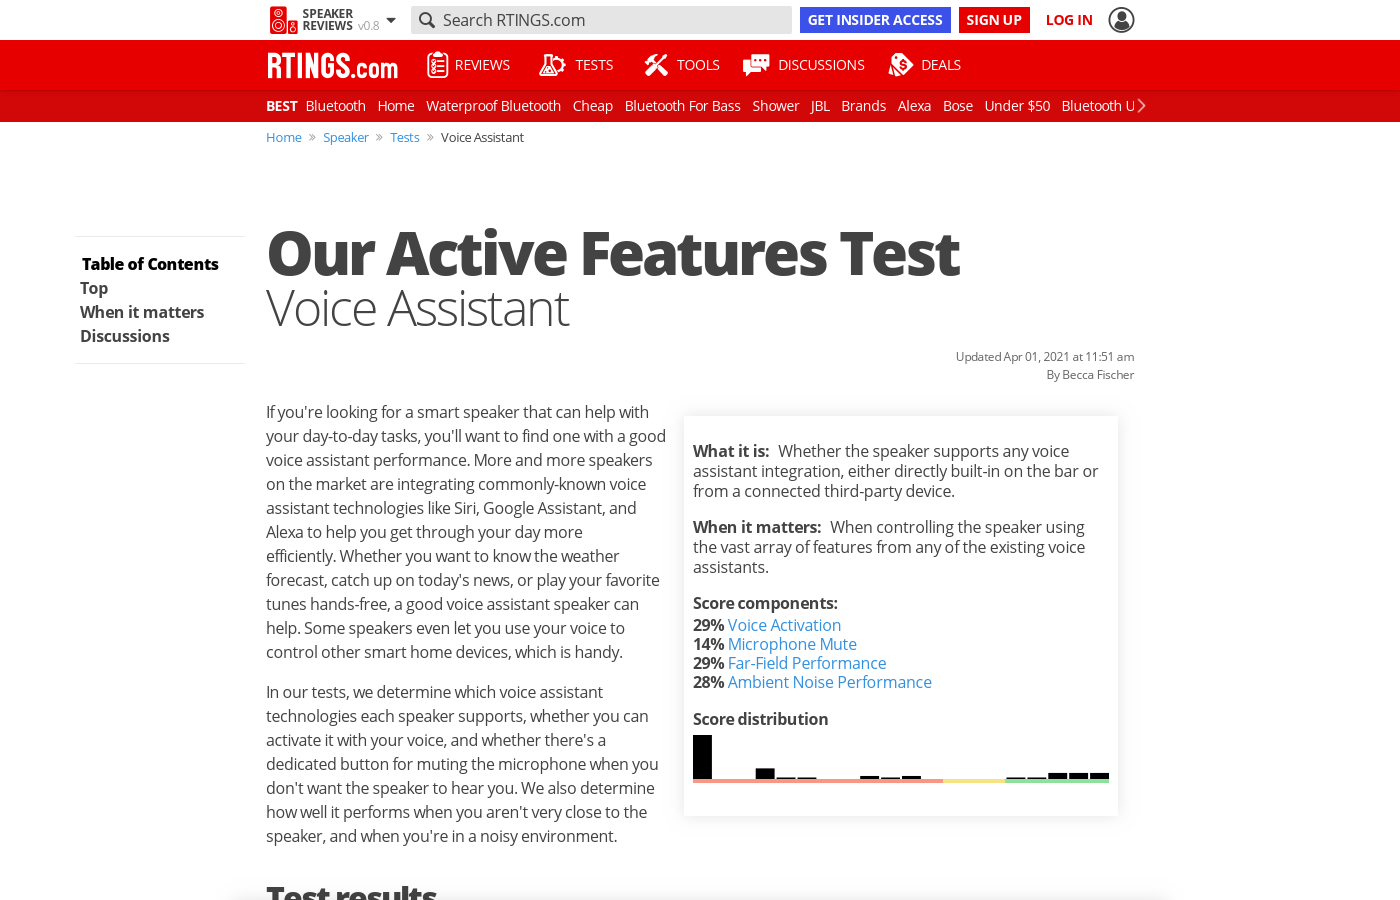 Our Active Features Test: Voice Assistant